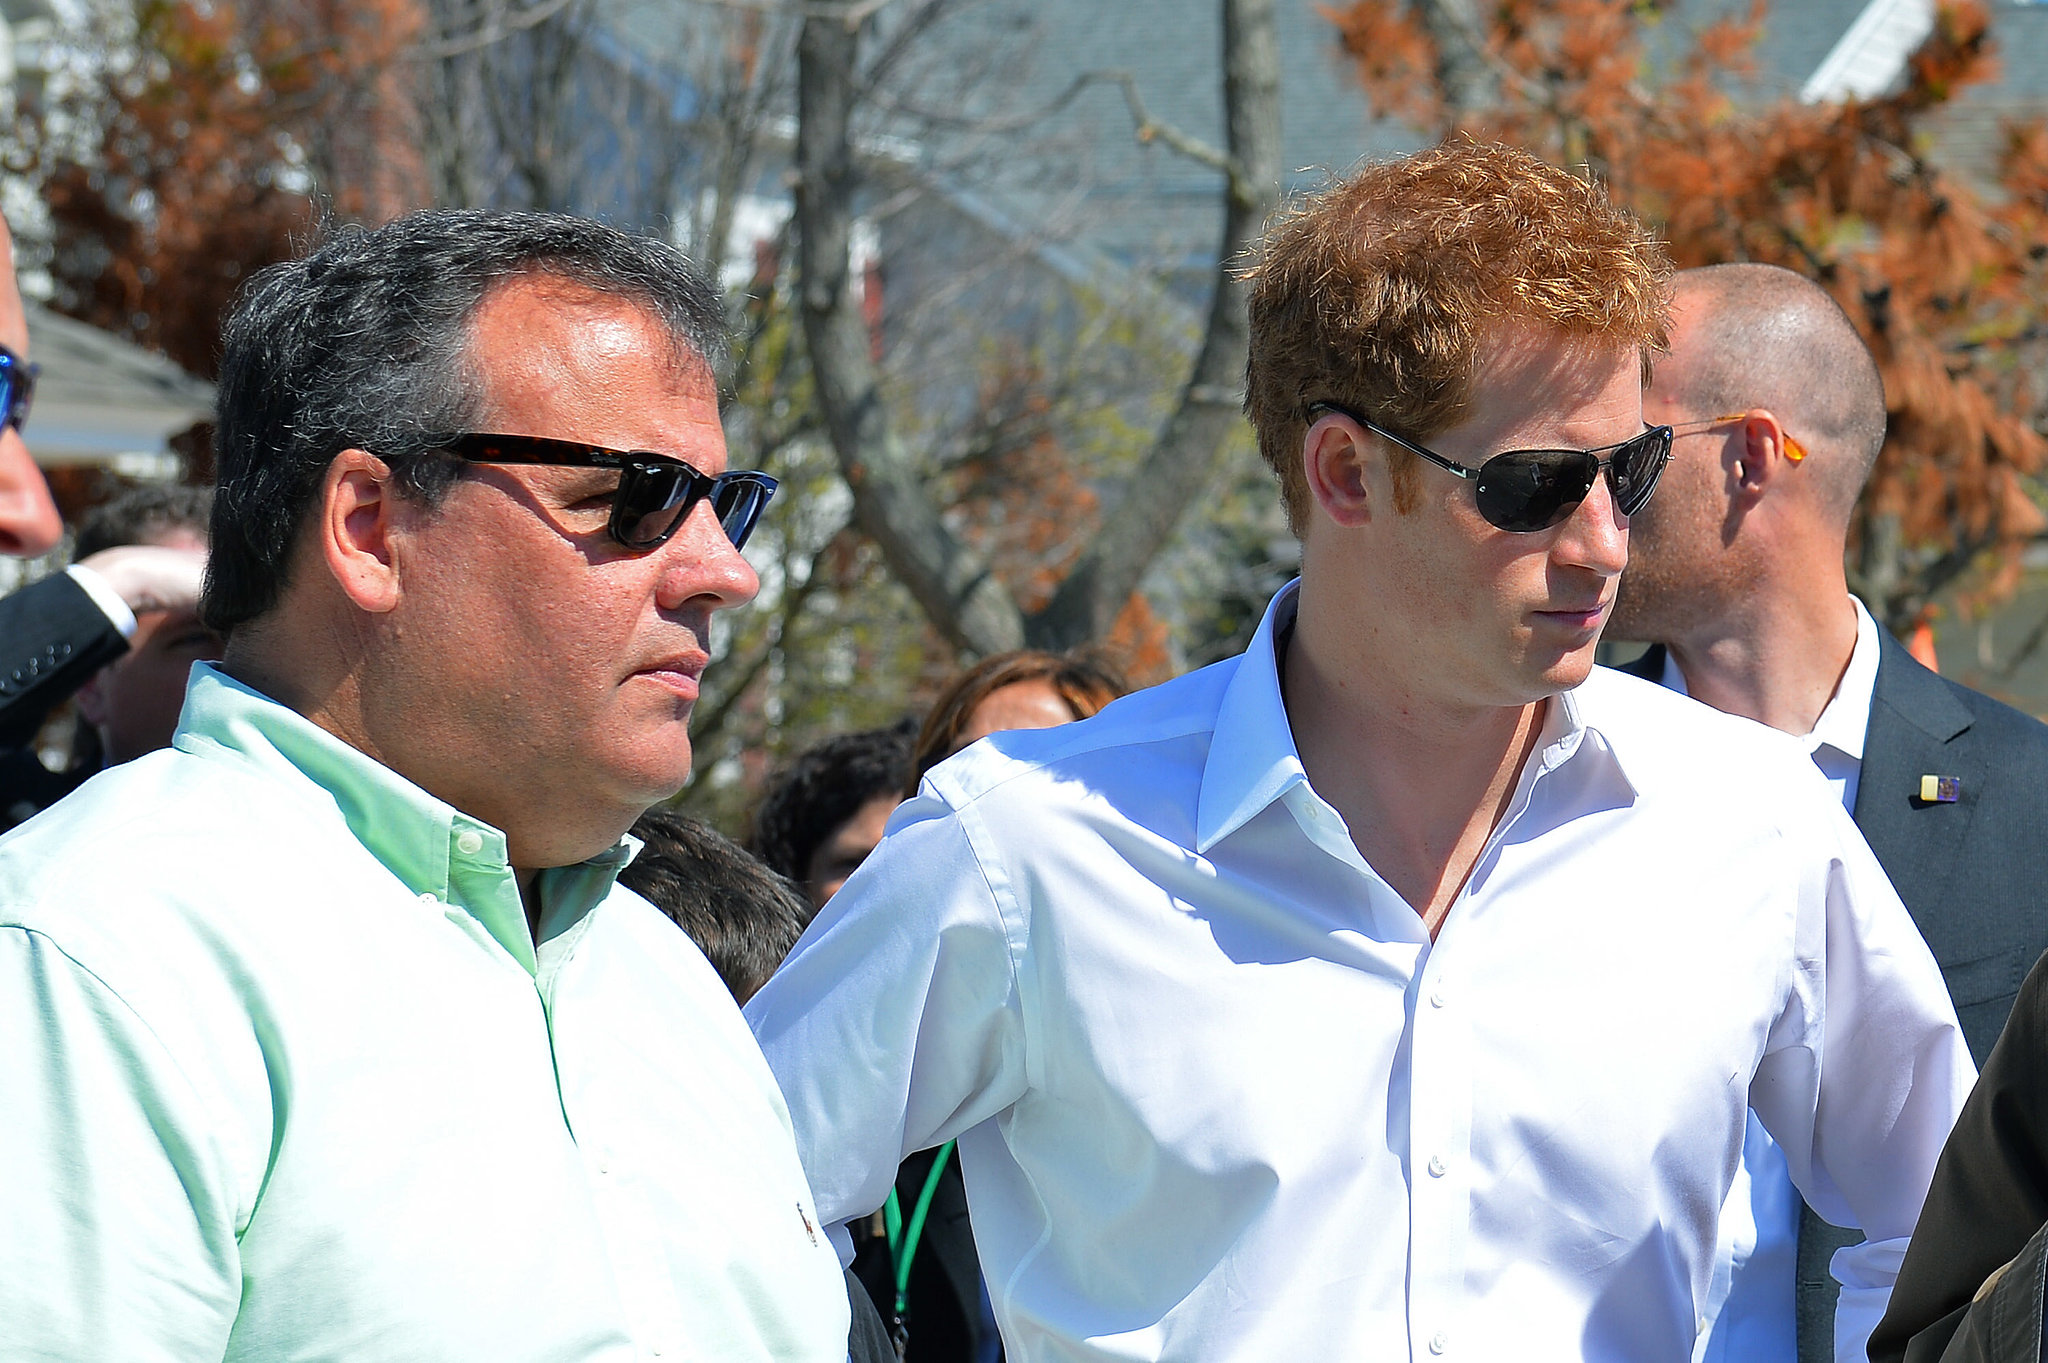 Prince Harry surveyed the destruction left behind from Hurricane Sandy at the Jersey Shore.